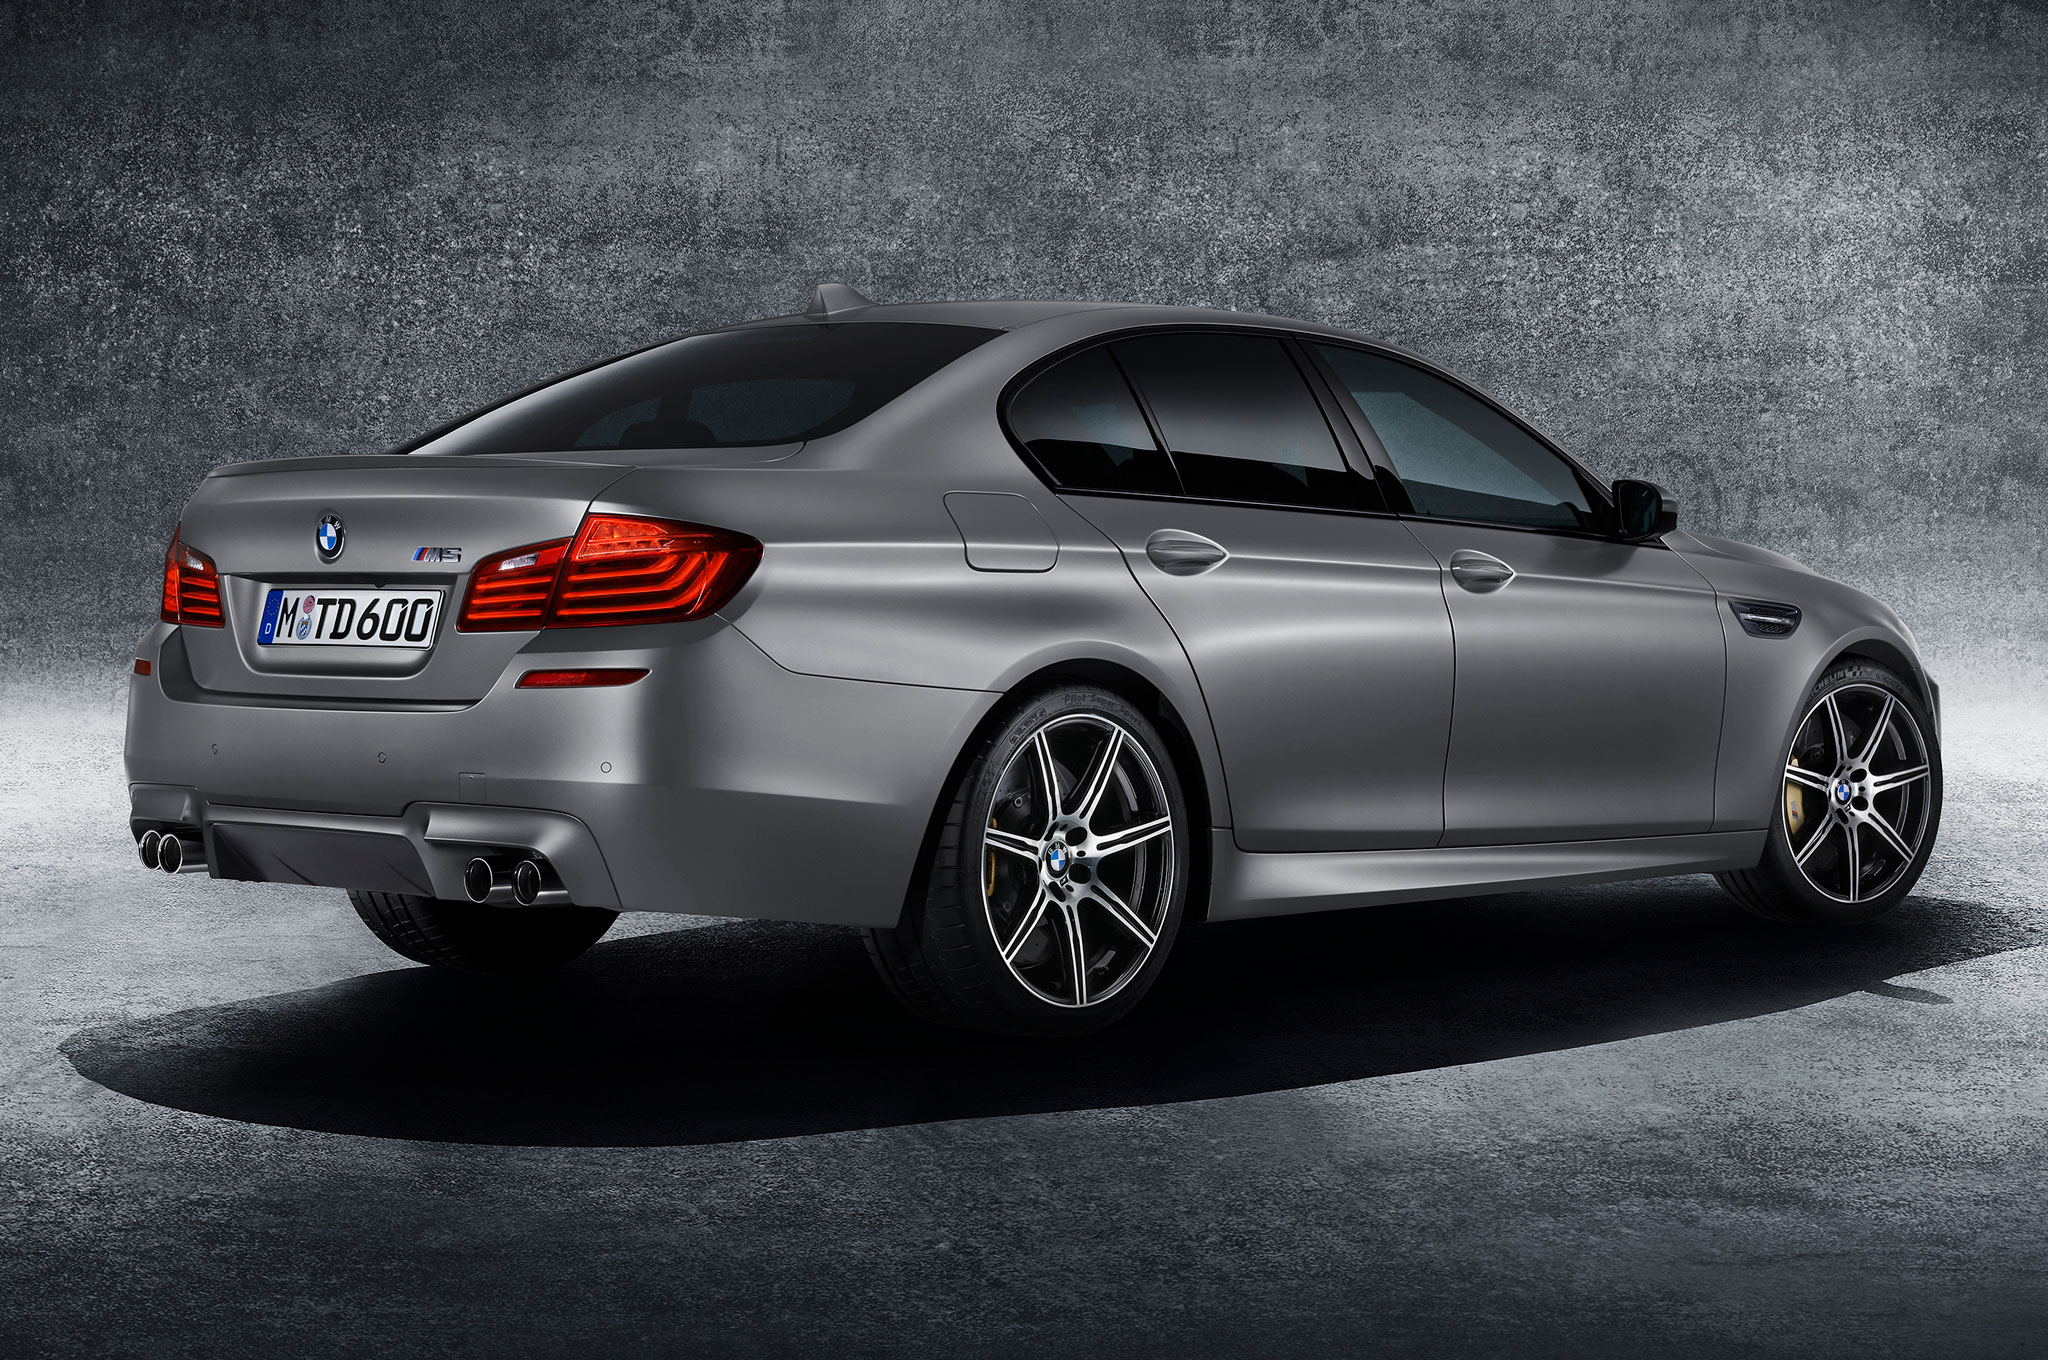 2015 bmw m5 30th anniversary edition packs 600 hp automobile. Black Bedroom Furniture Sets. Home Design Ideas